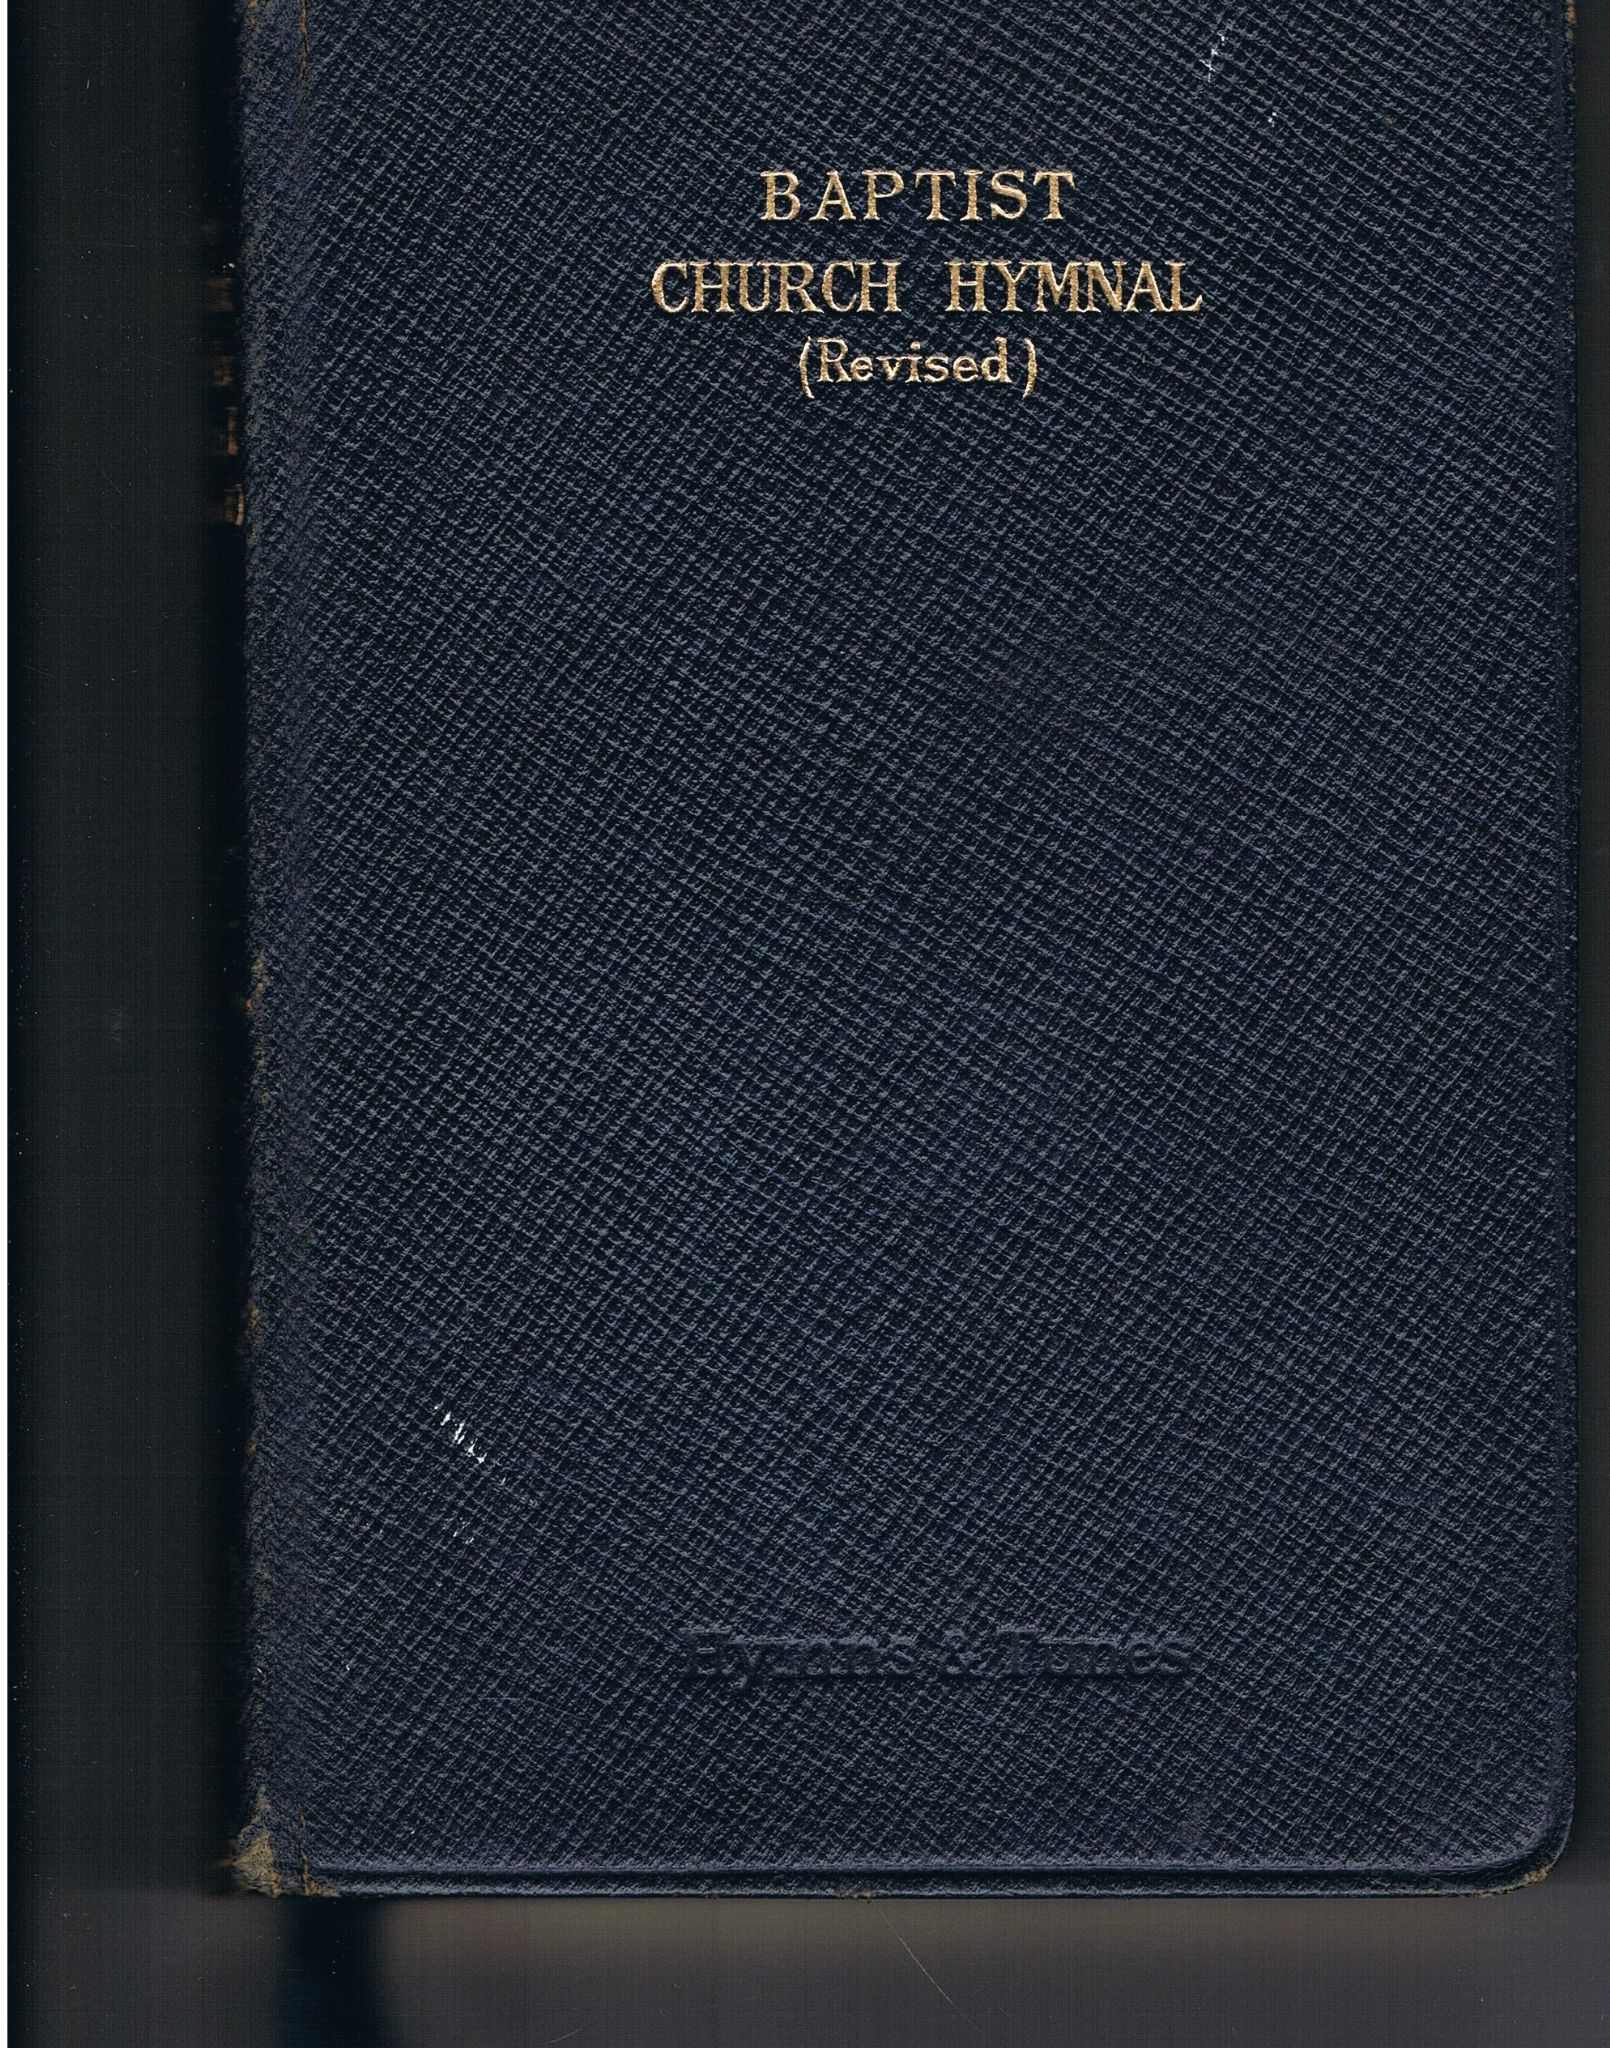 Baptist Church Hymnal (revised edition 1933) Hymns and Tunes